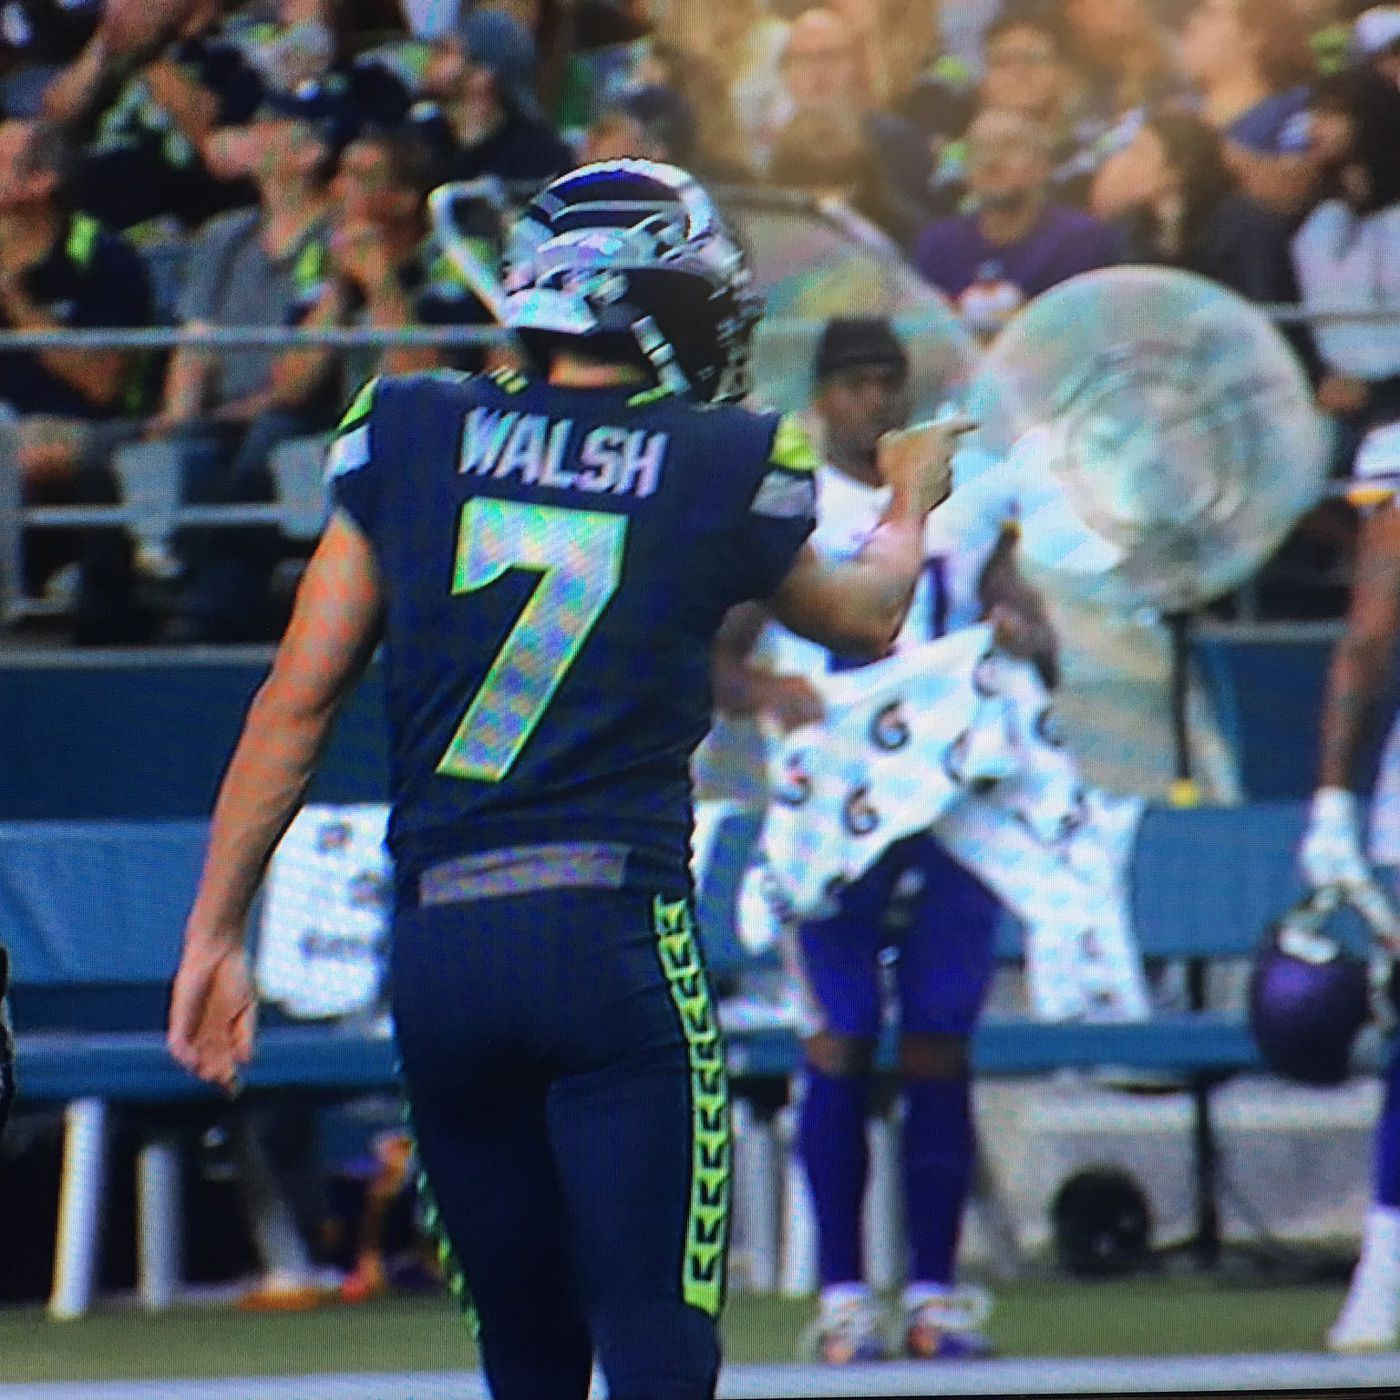 best sneakers 834c6 c4006 Blair Walsh points at Vikings bench after making field goals ...